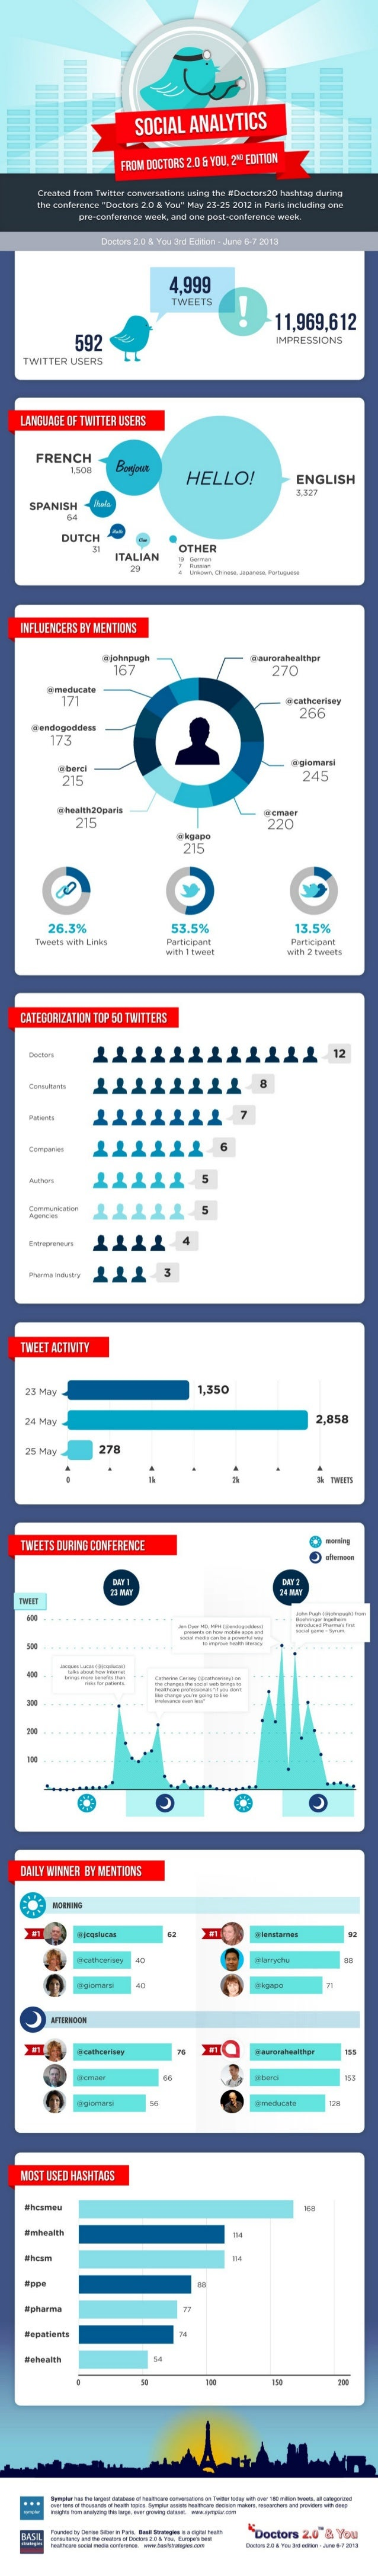 Twitter Analysis Infographic on the hashtag #doctors20